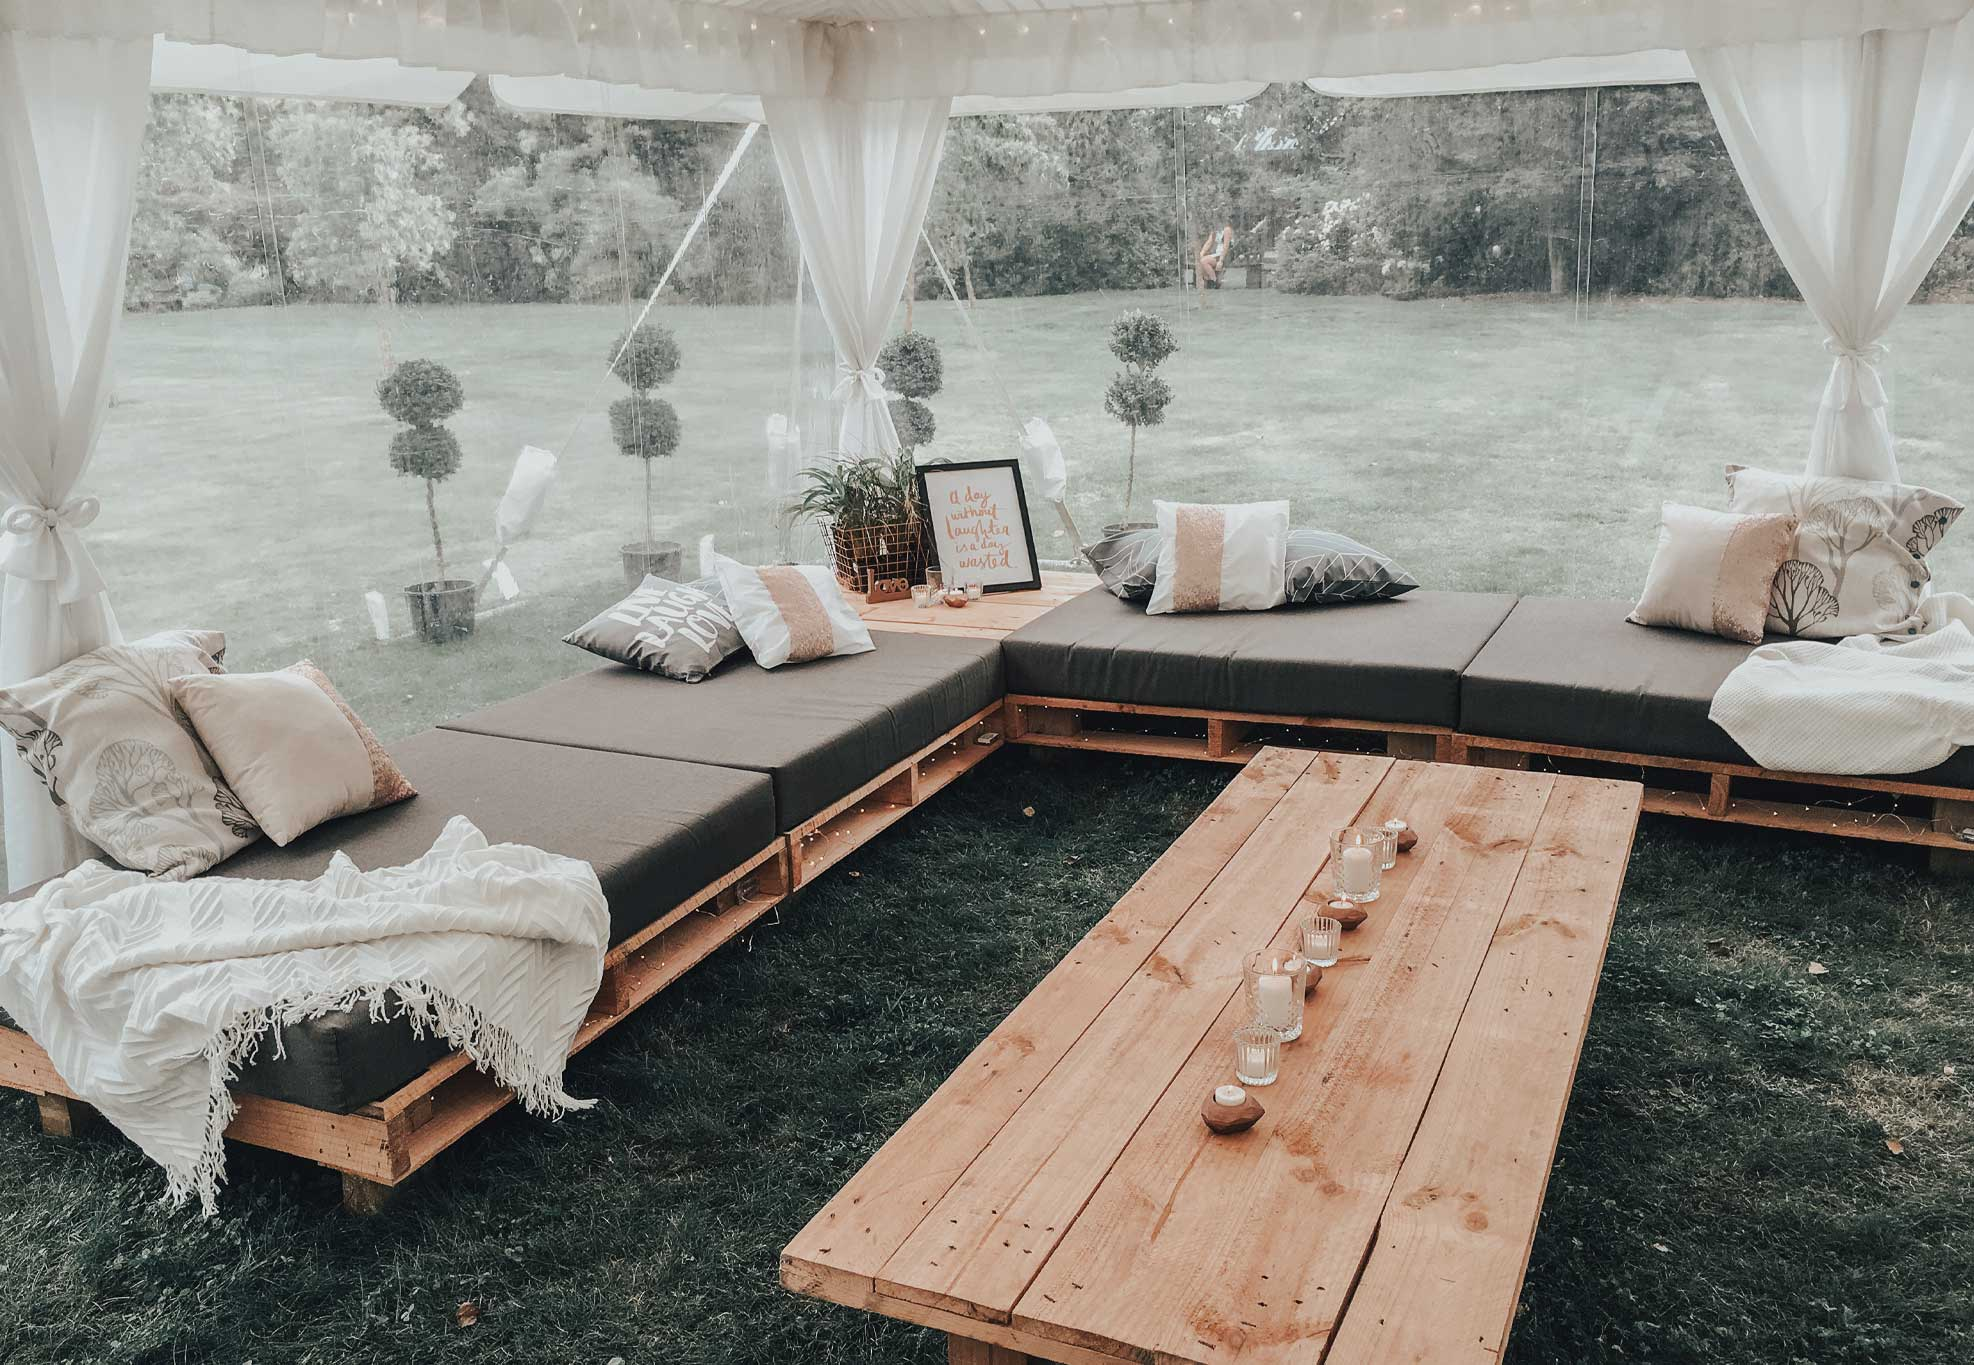 silk-estate-marquee-weddings-and-events-styling-and-hire-furniture-lounge-7